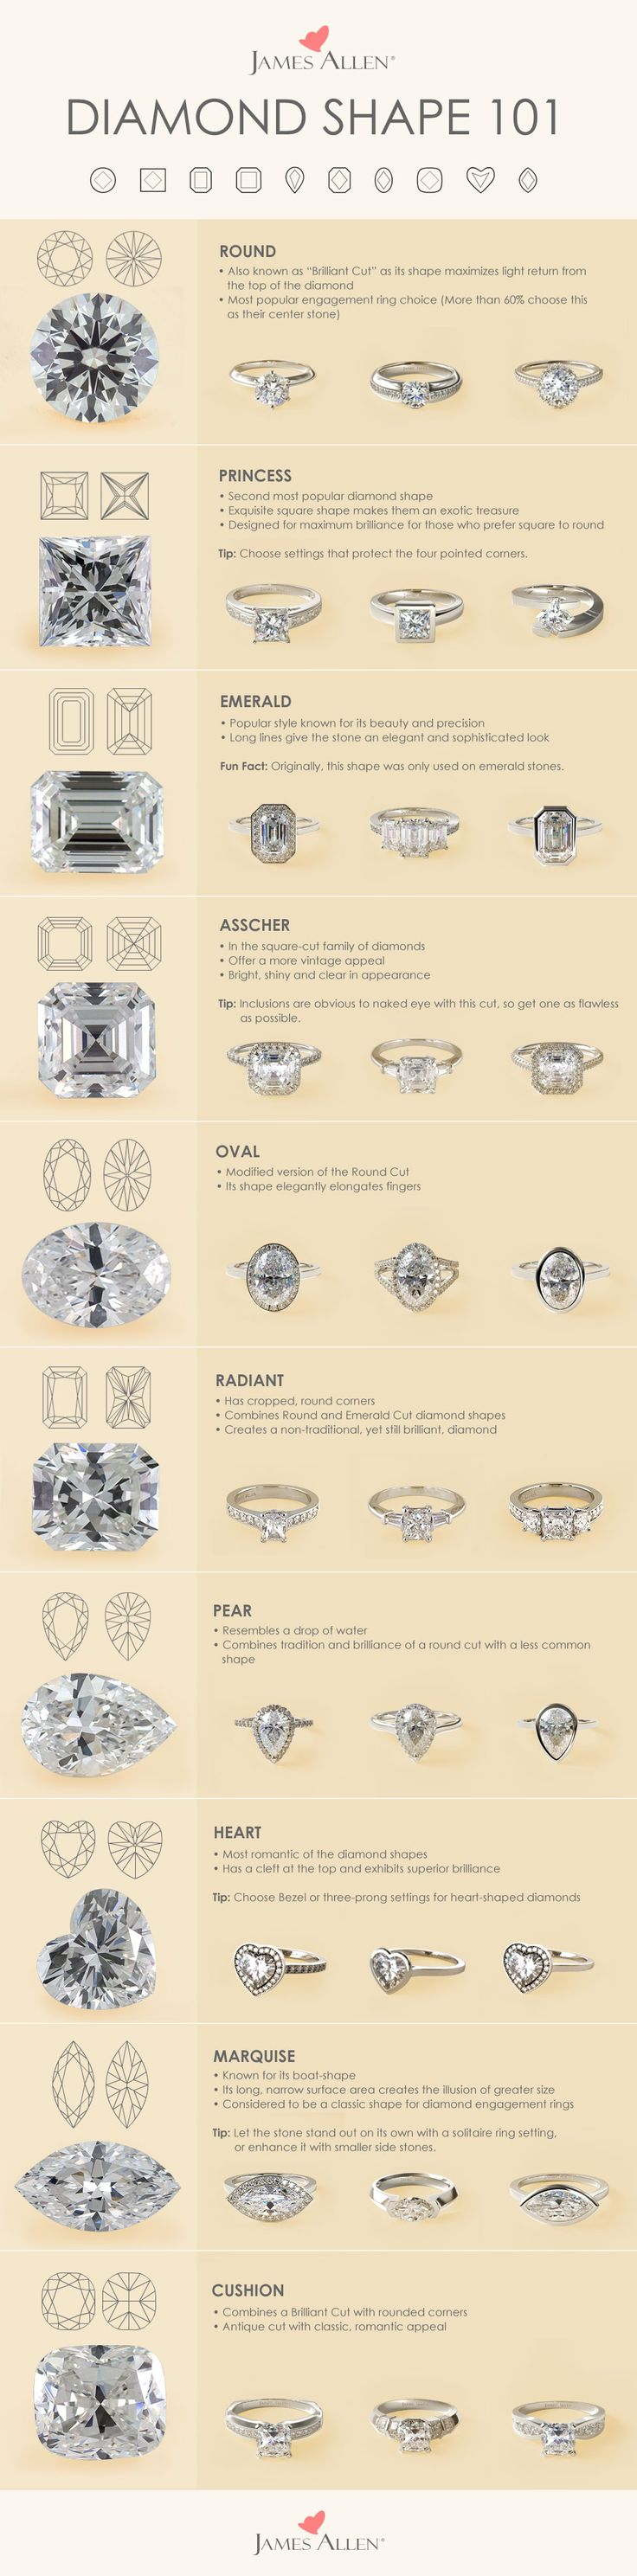 A shape for each type of engagement ring. Each diamond shape possesses its own unique qualities. James Allen offers the highest quality certified diamonds to satisfy all tastes. Browse these diamond shapes in 360° HD on jamesallen.com. #Jamesallenrings